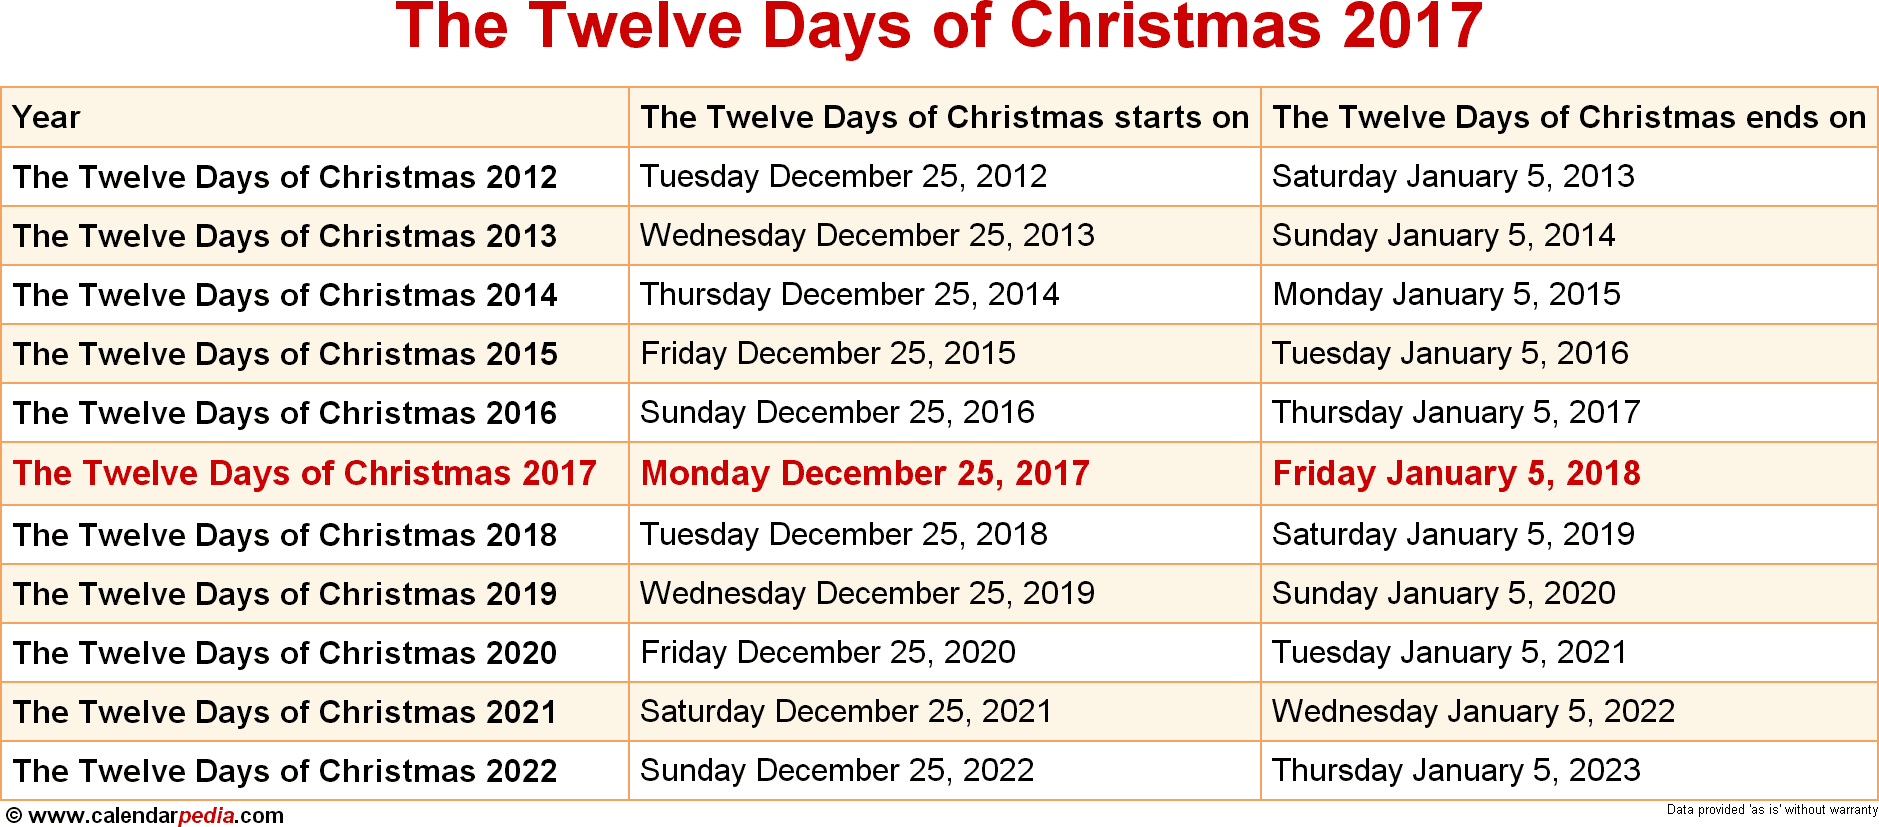 The Twelve Days of Christmas 2017